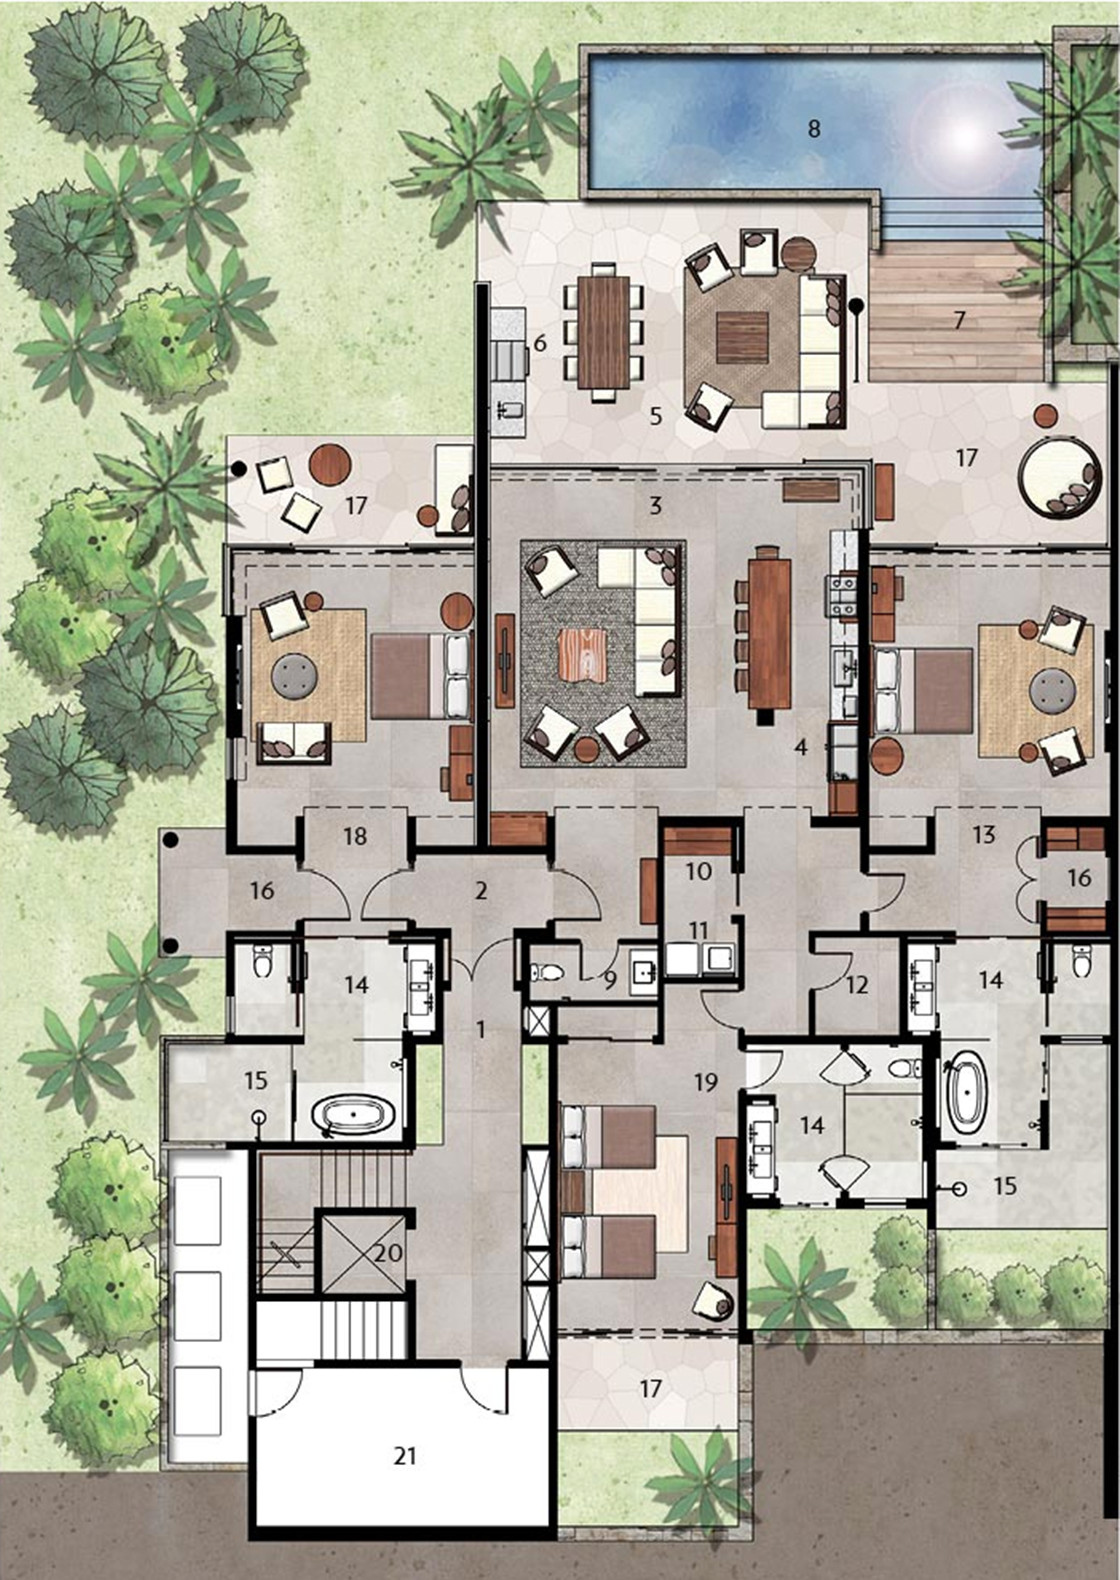 Los cabos luxury villas floor plans chileno bay resort for 4 bedroom villa plans